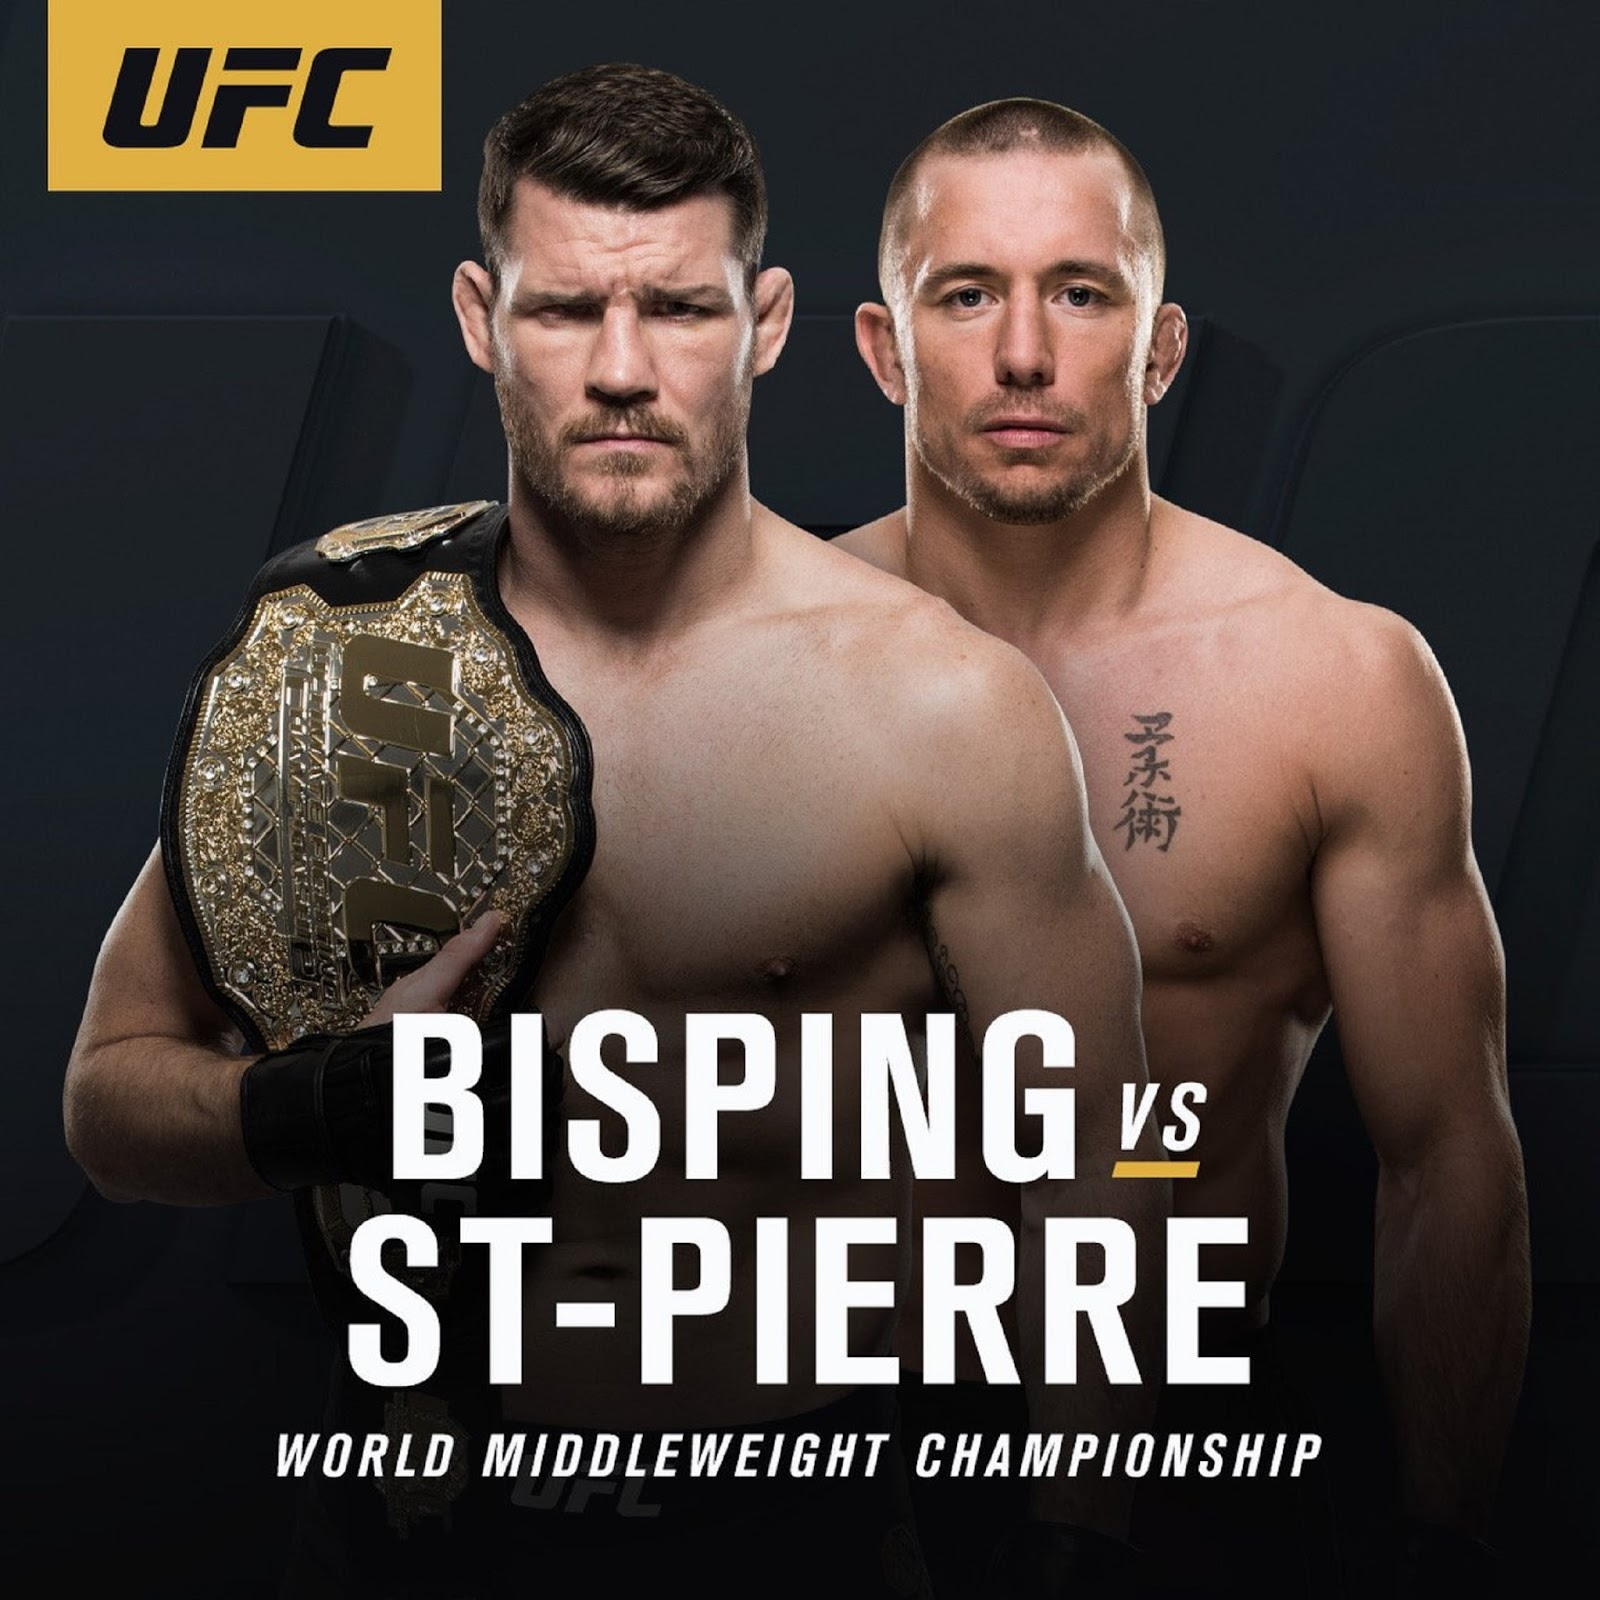 MICHAEL BISPING VS. GEORGES ST PIERRE 5